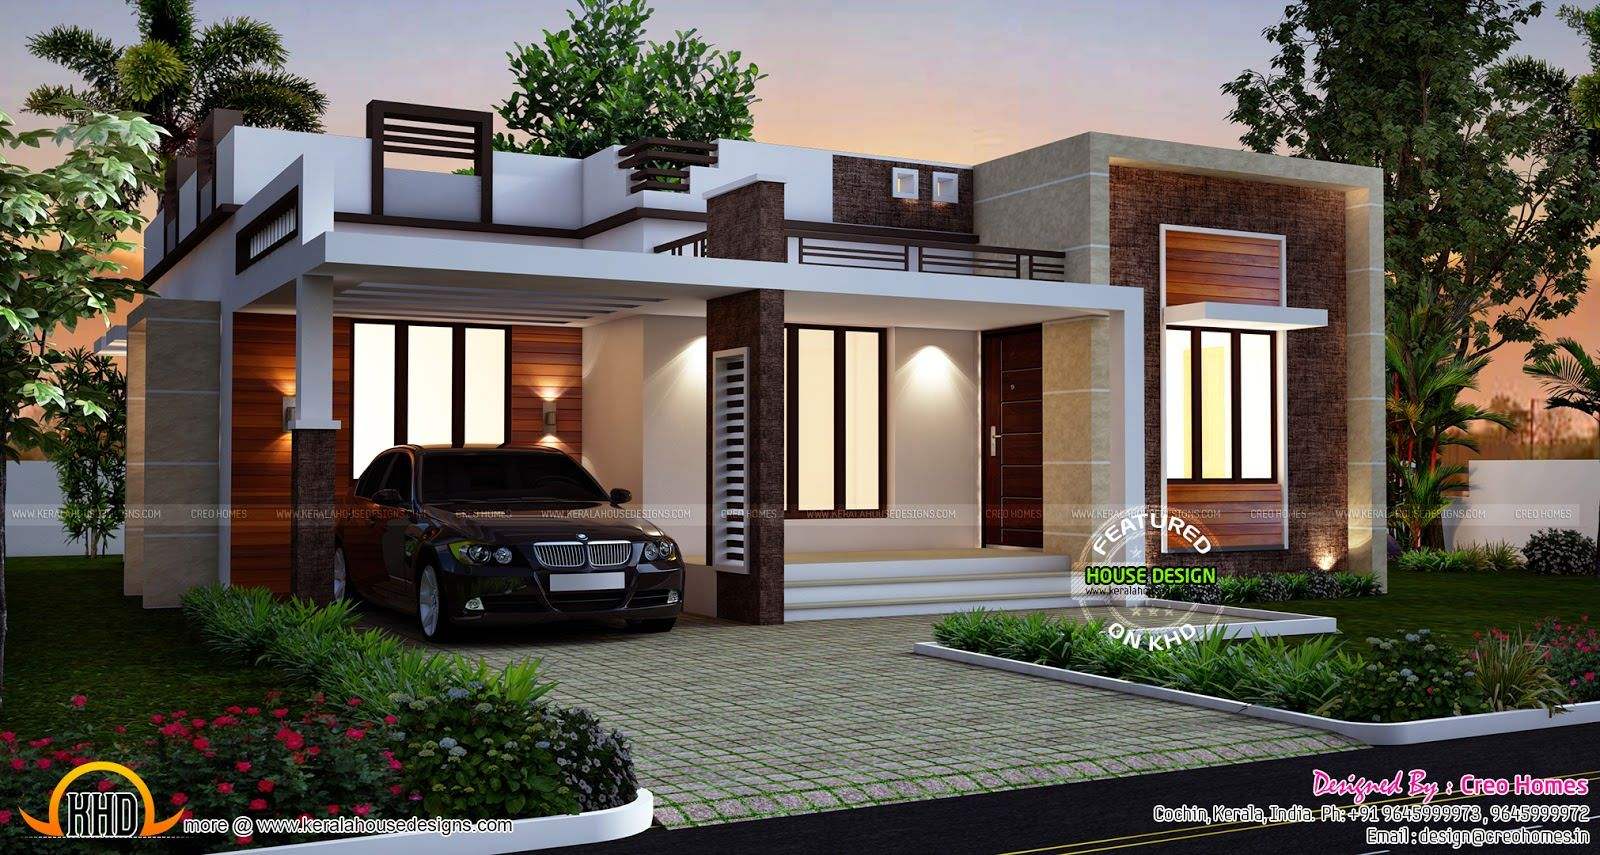 Designs homes design single story flat roof house plans for New home models and plans